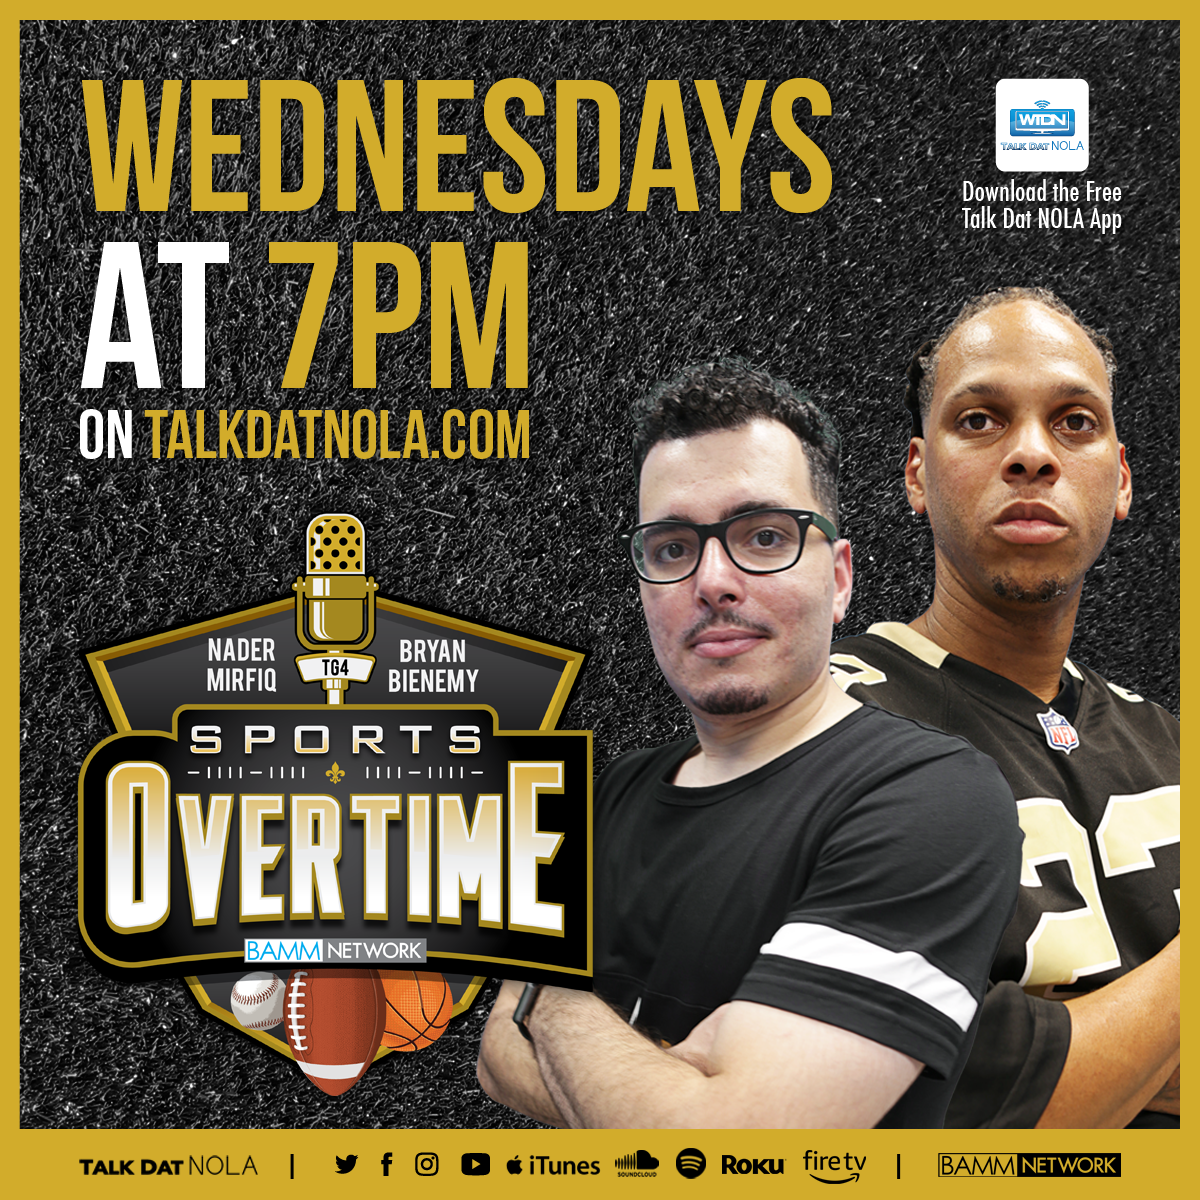 SportsOvertime_PromoGraphic_1200x1200_Wednesdays.png (1.70 MB)